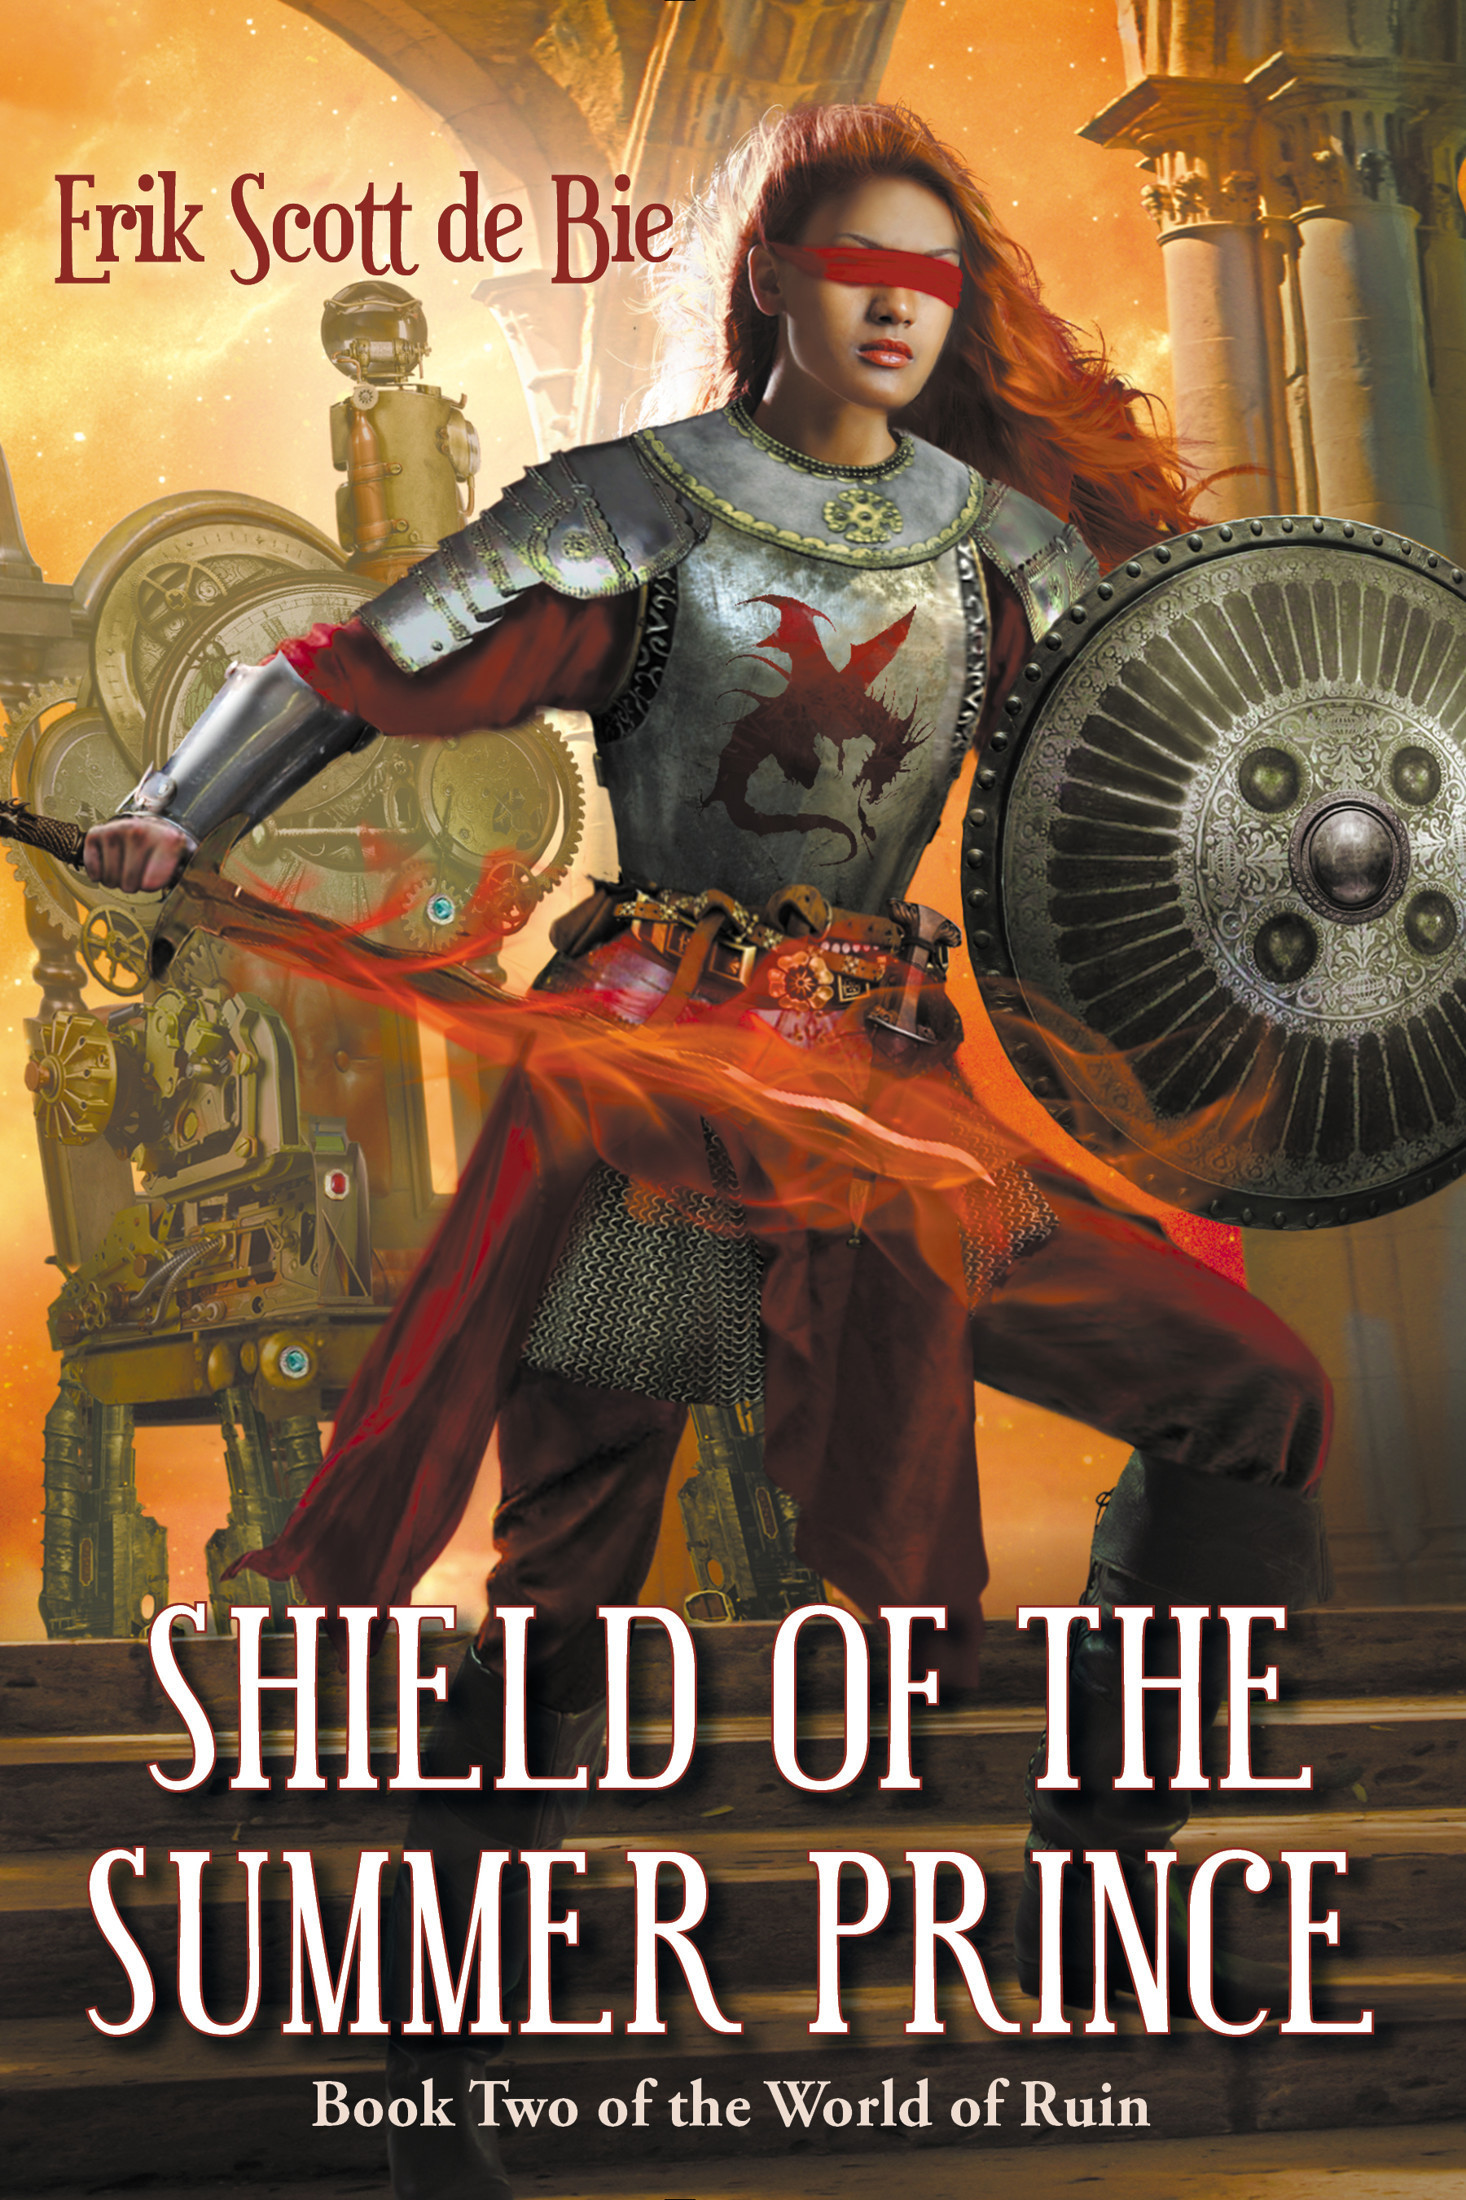 Shield of the Summer Prince 00100